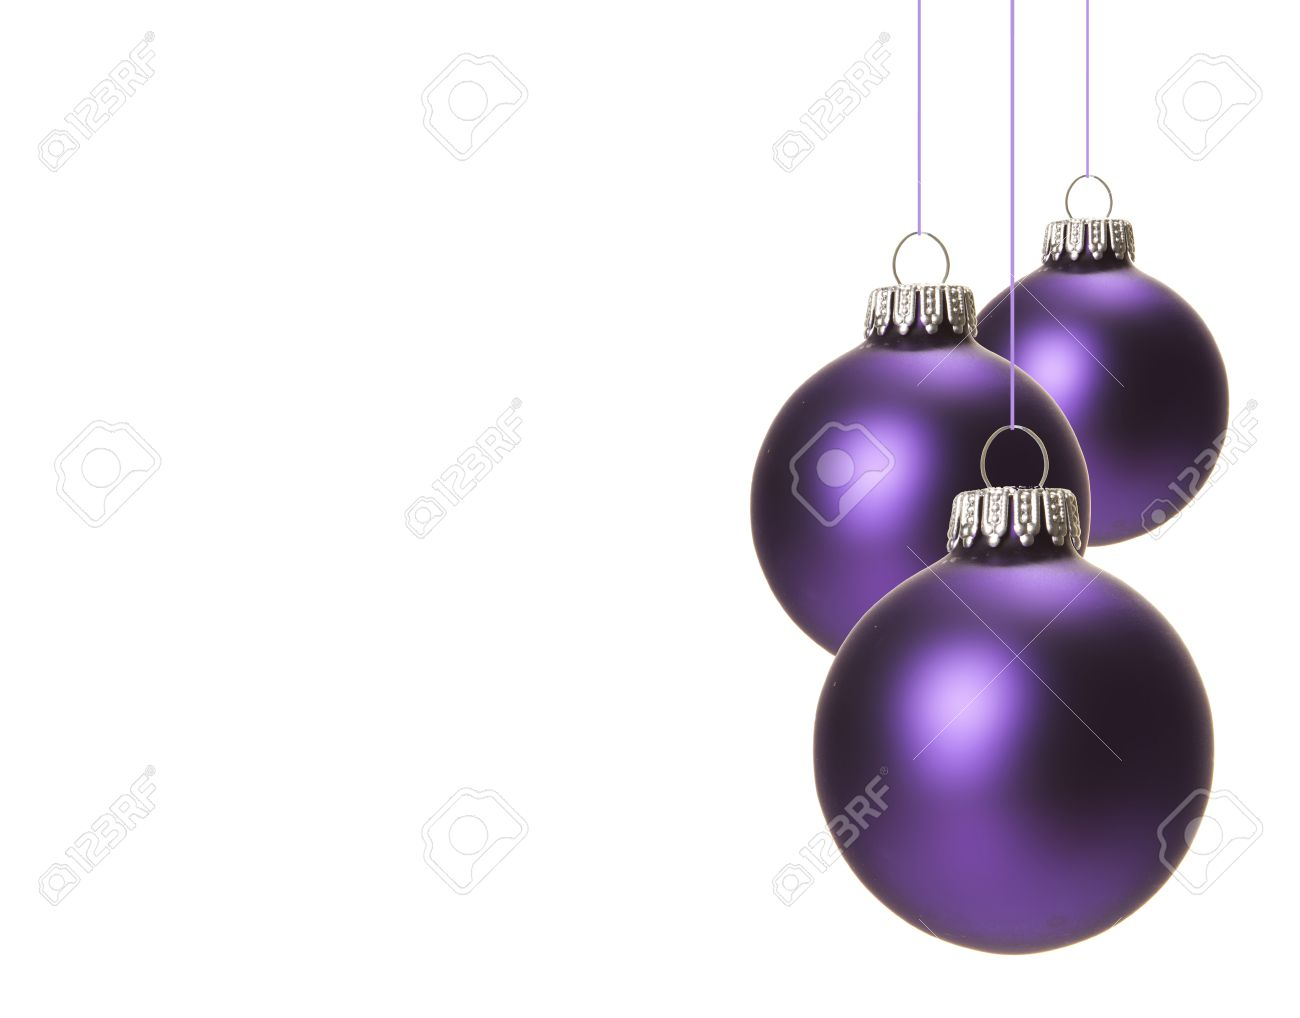 Christmas Purple.Christmas Purple Christmas Balls Isolated Hanging With White